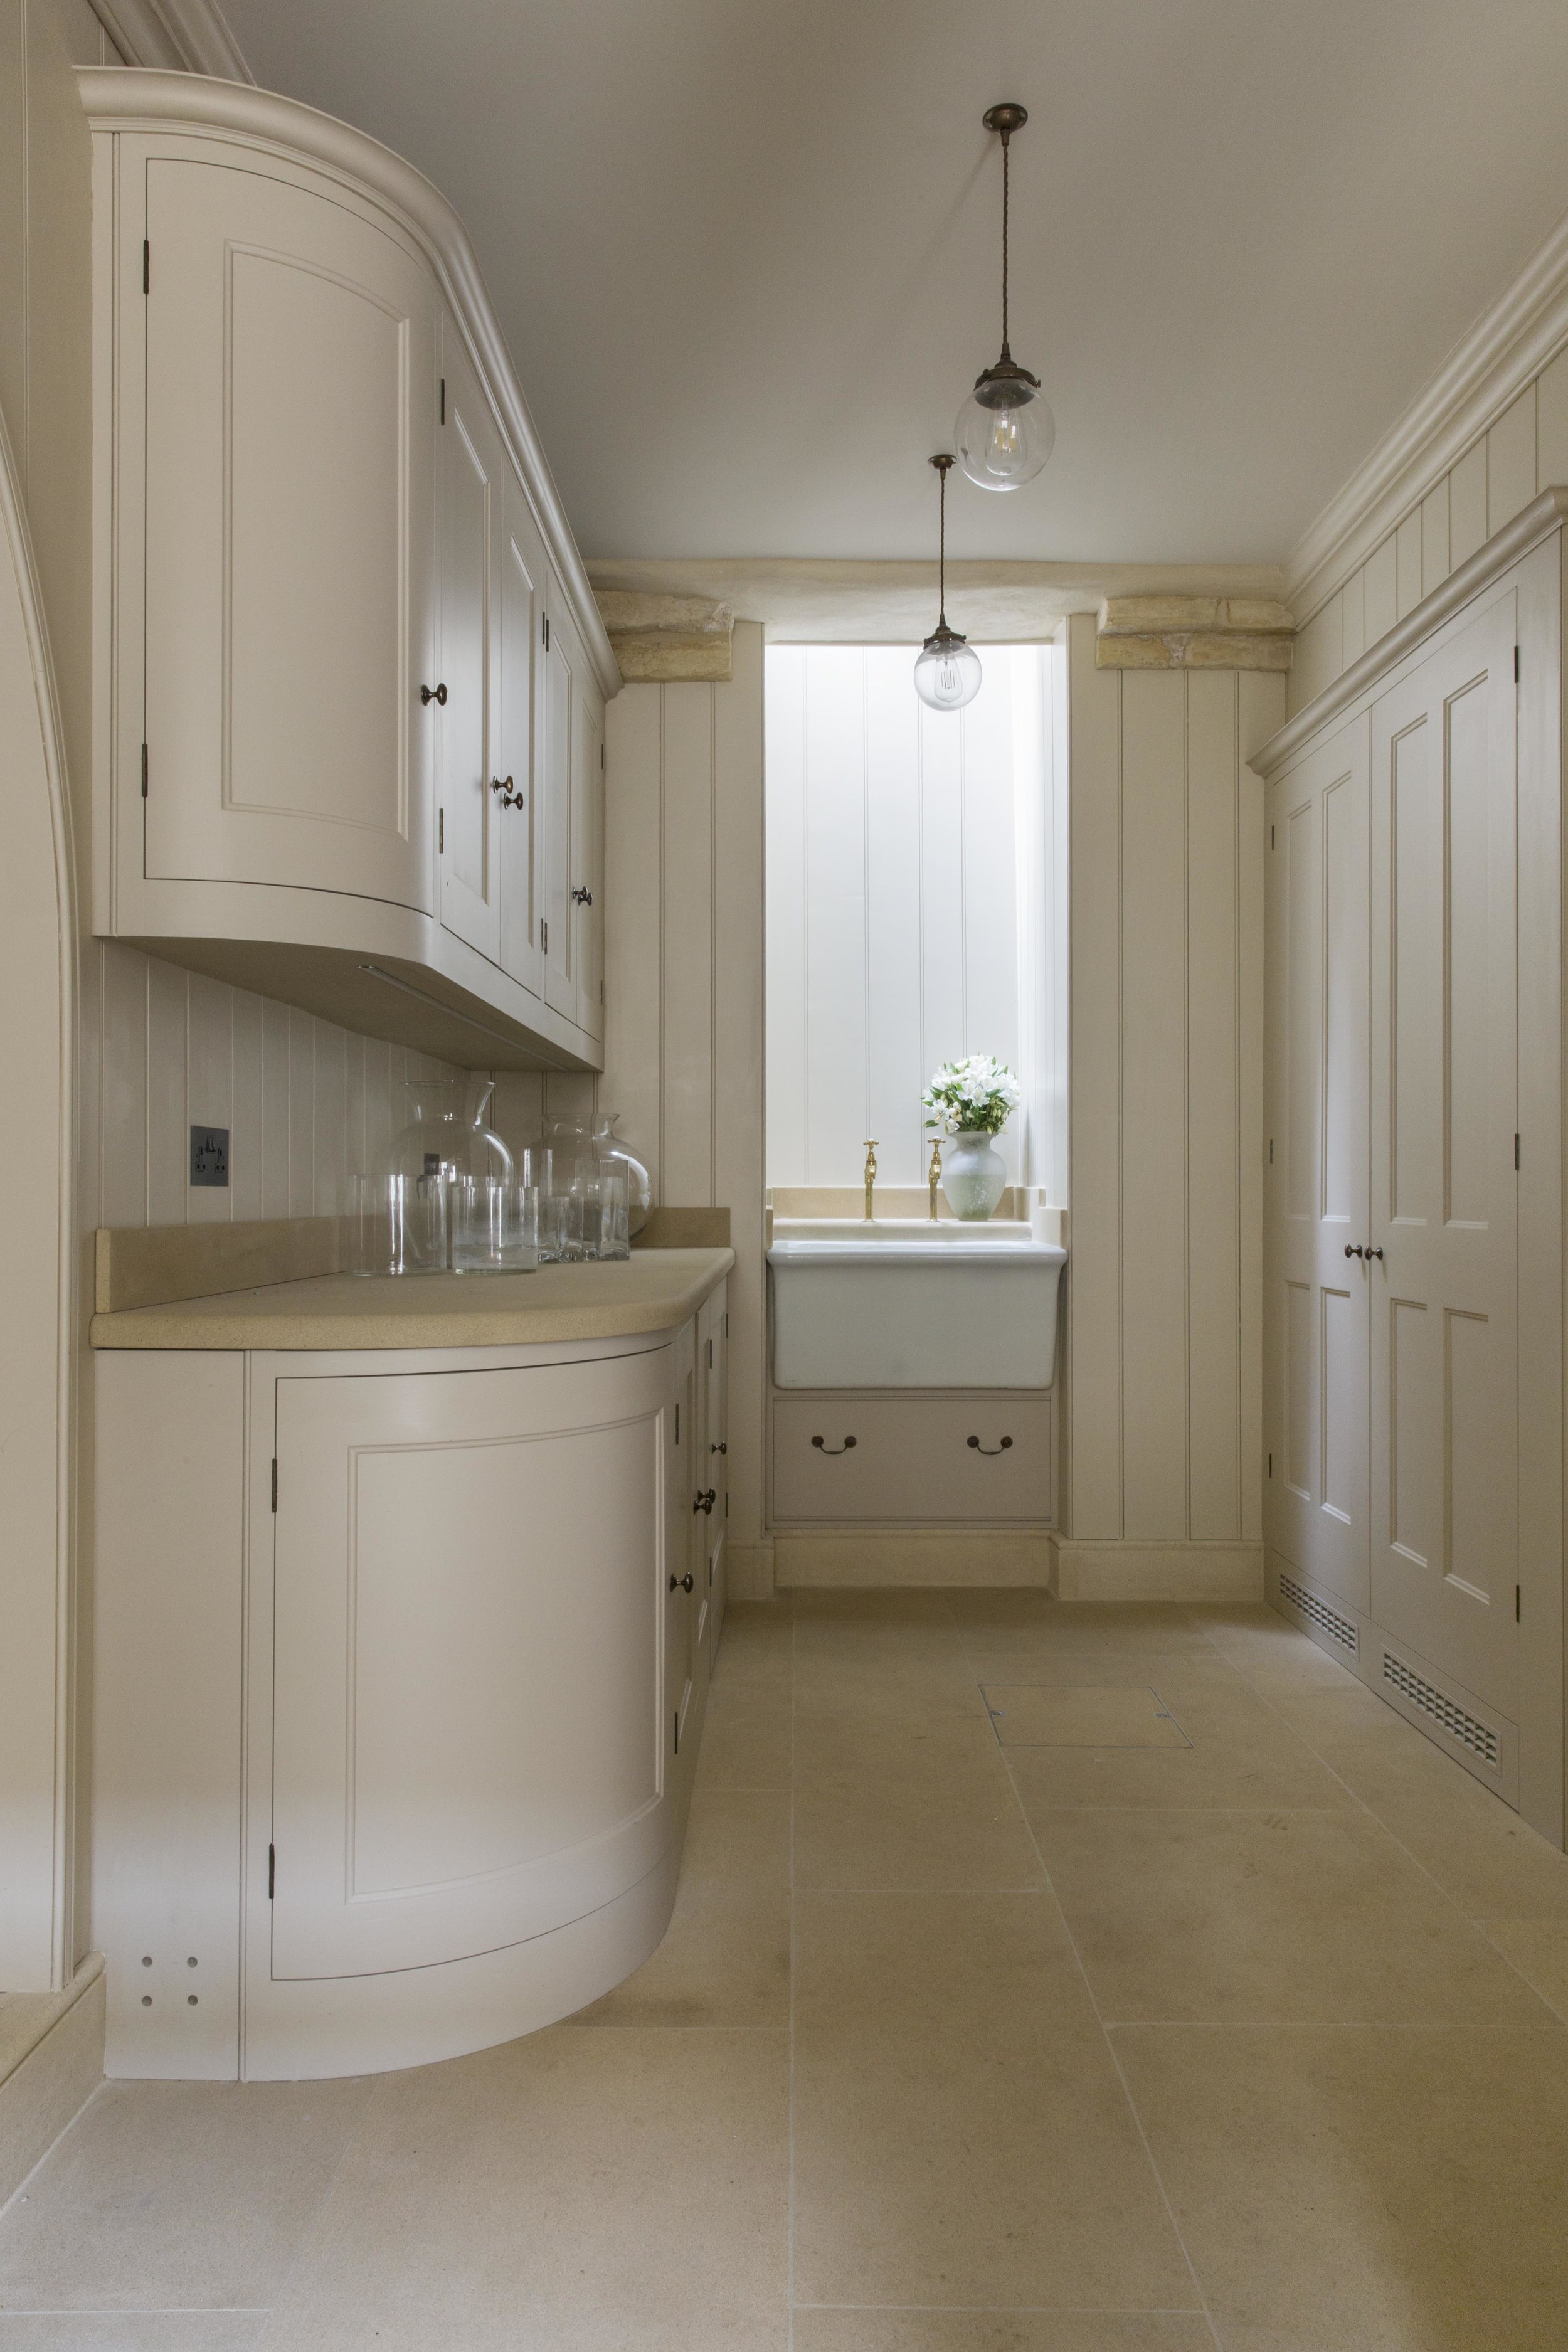 Clean lines and plain cabinetry bring a beautiful quality and simplicity to the utility room.